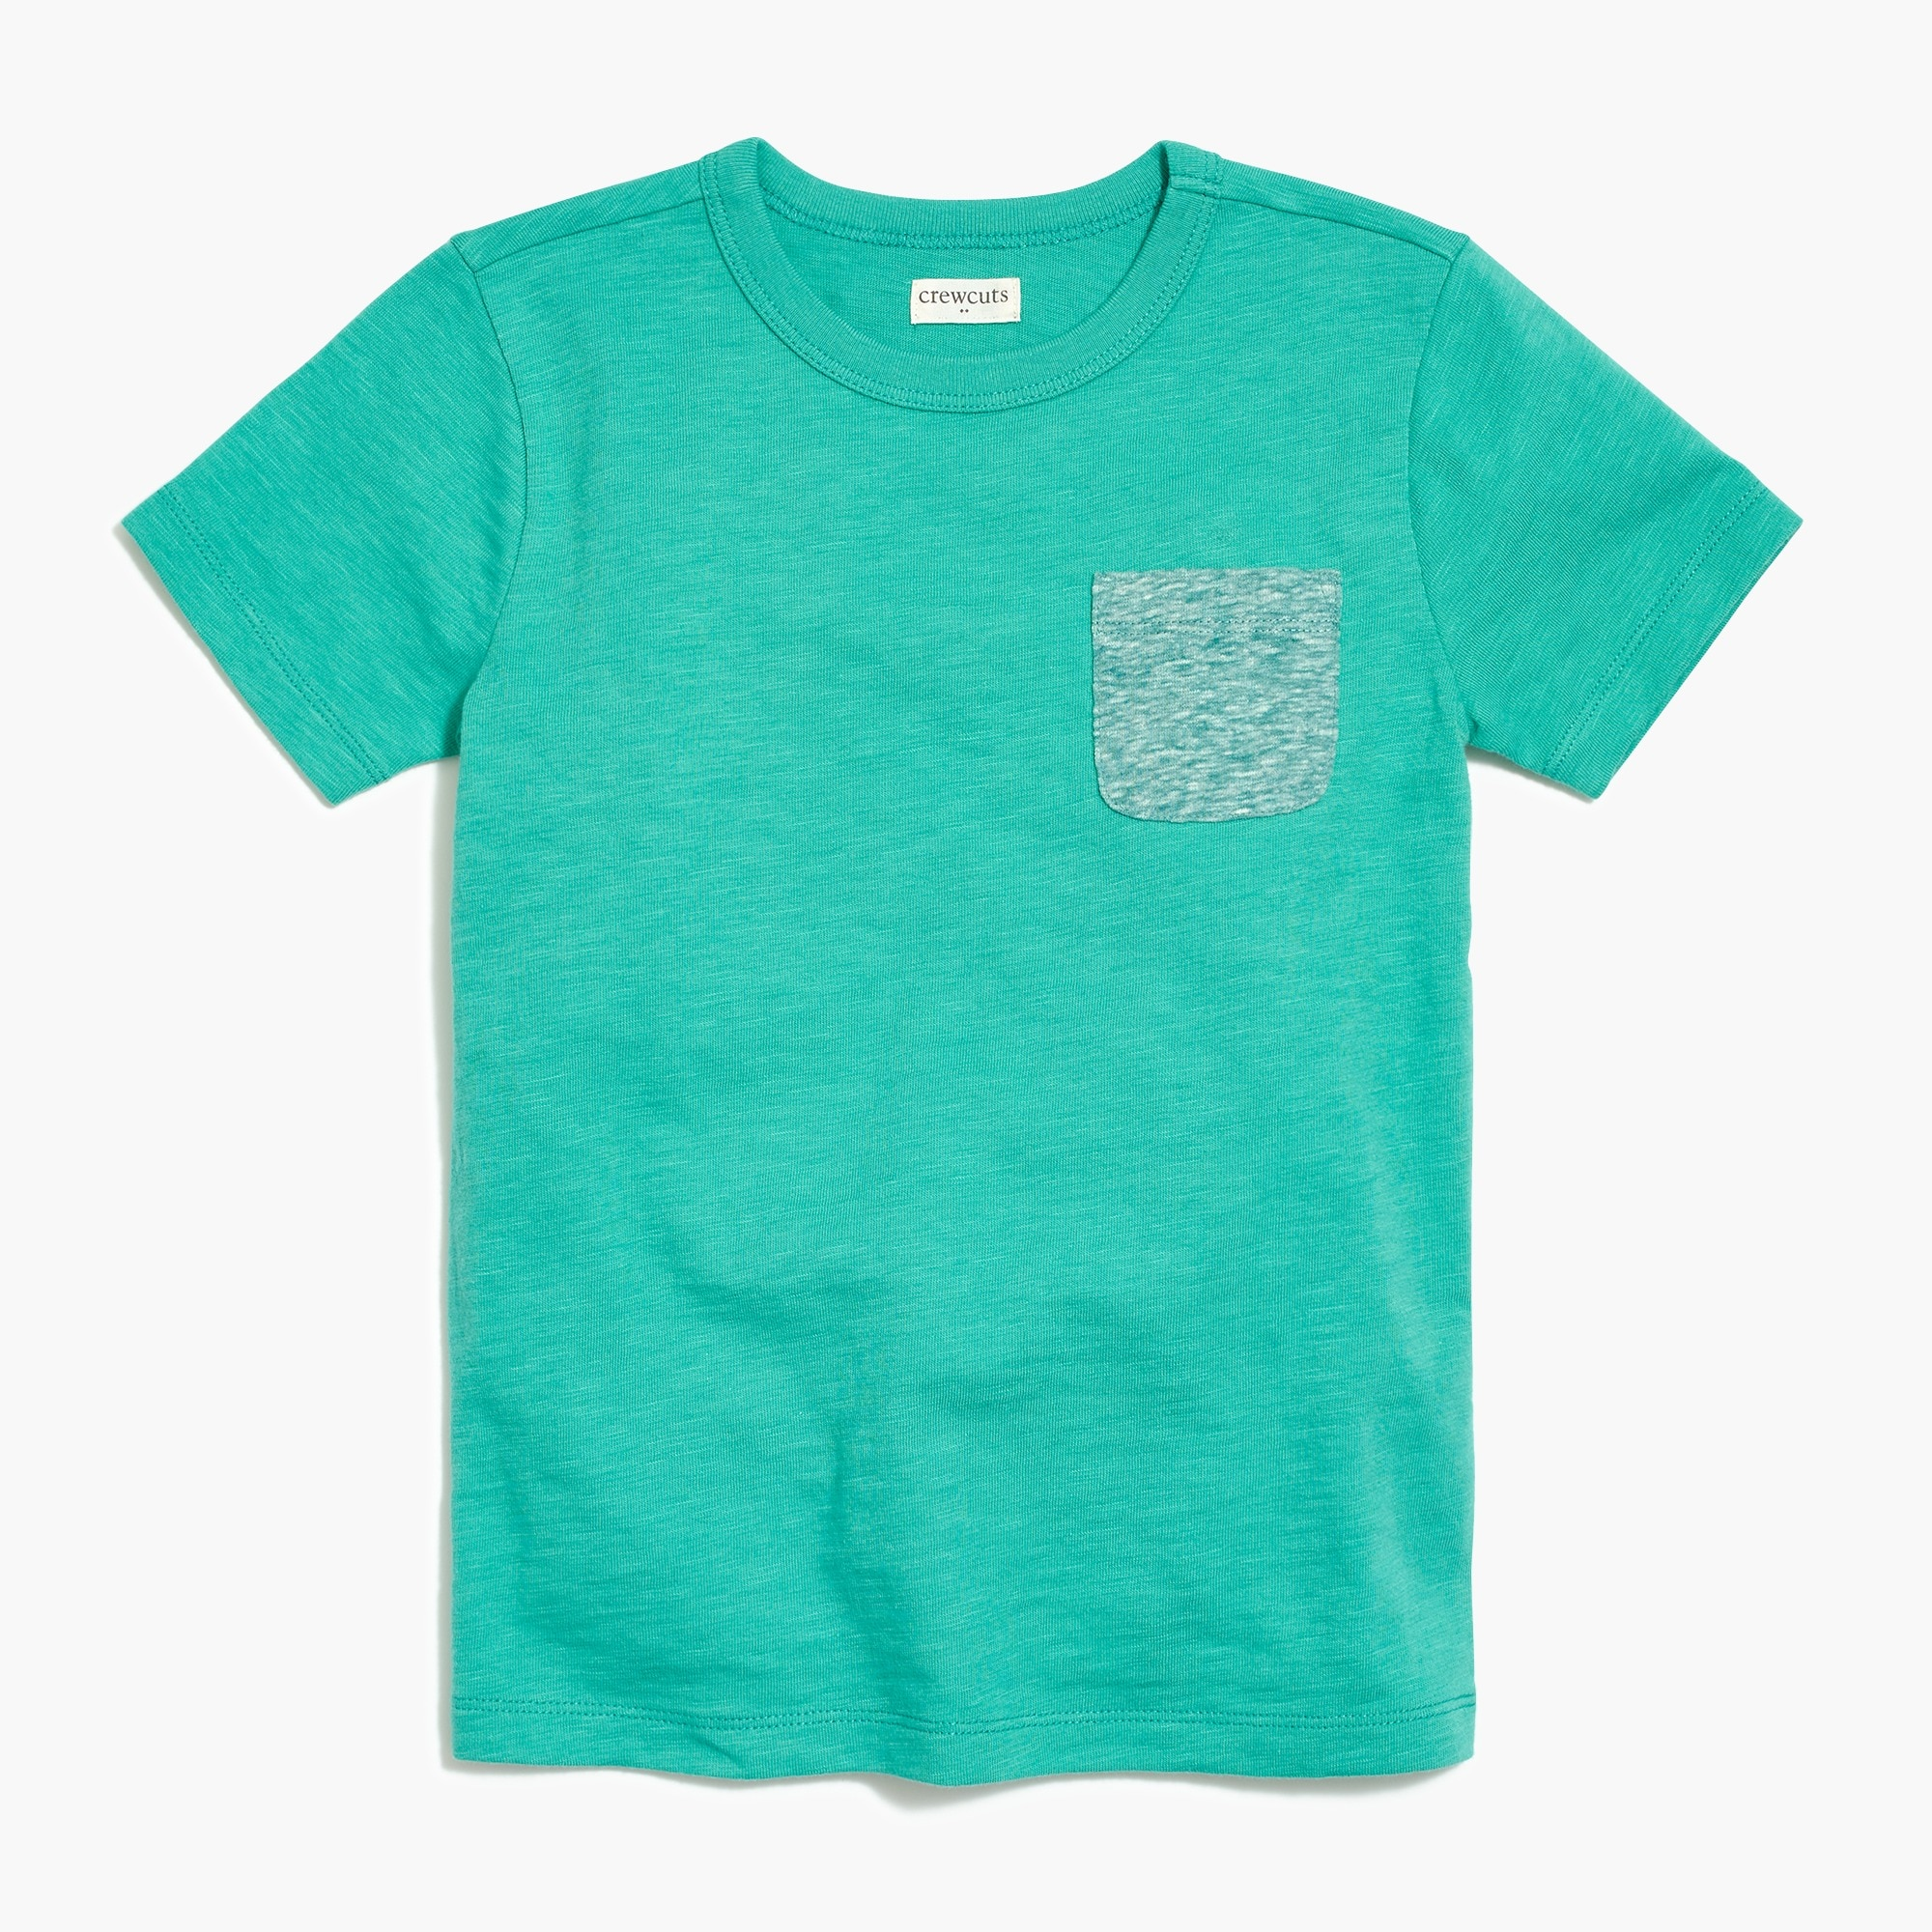 factory boys Boys' contrast-pocket t-SHIRT